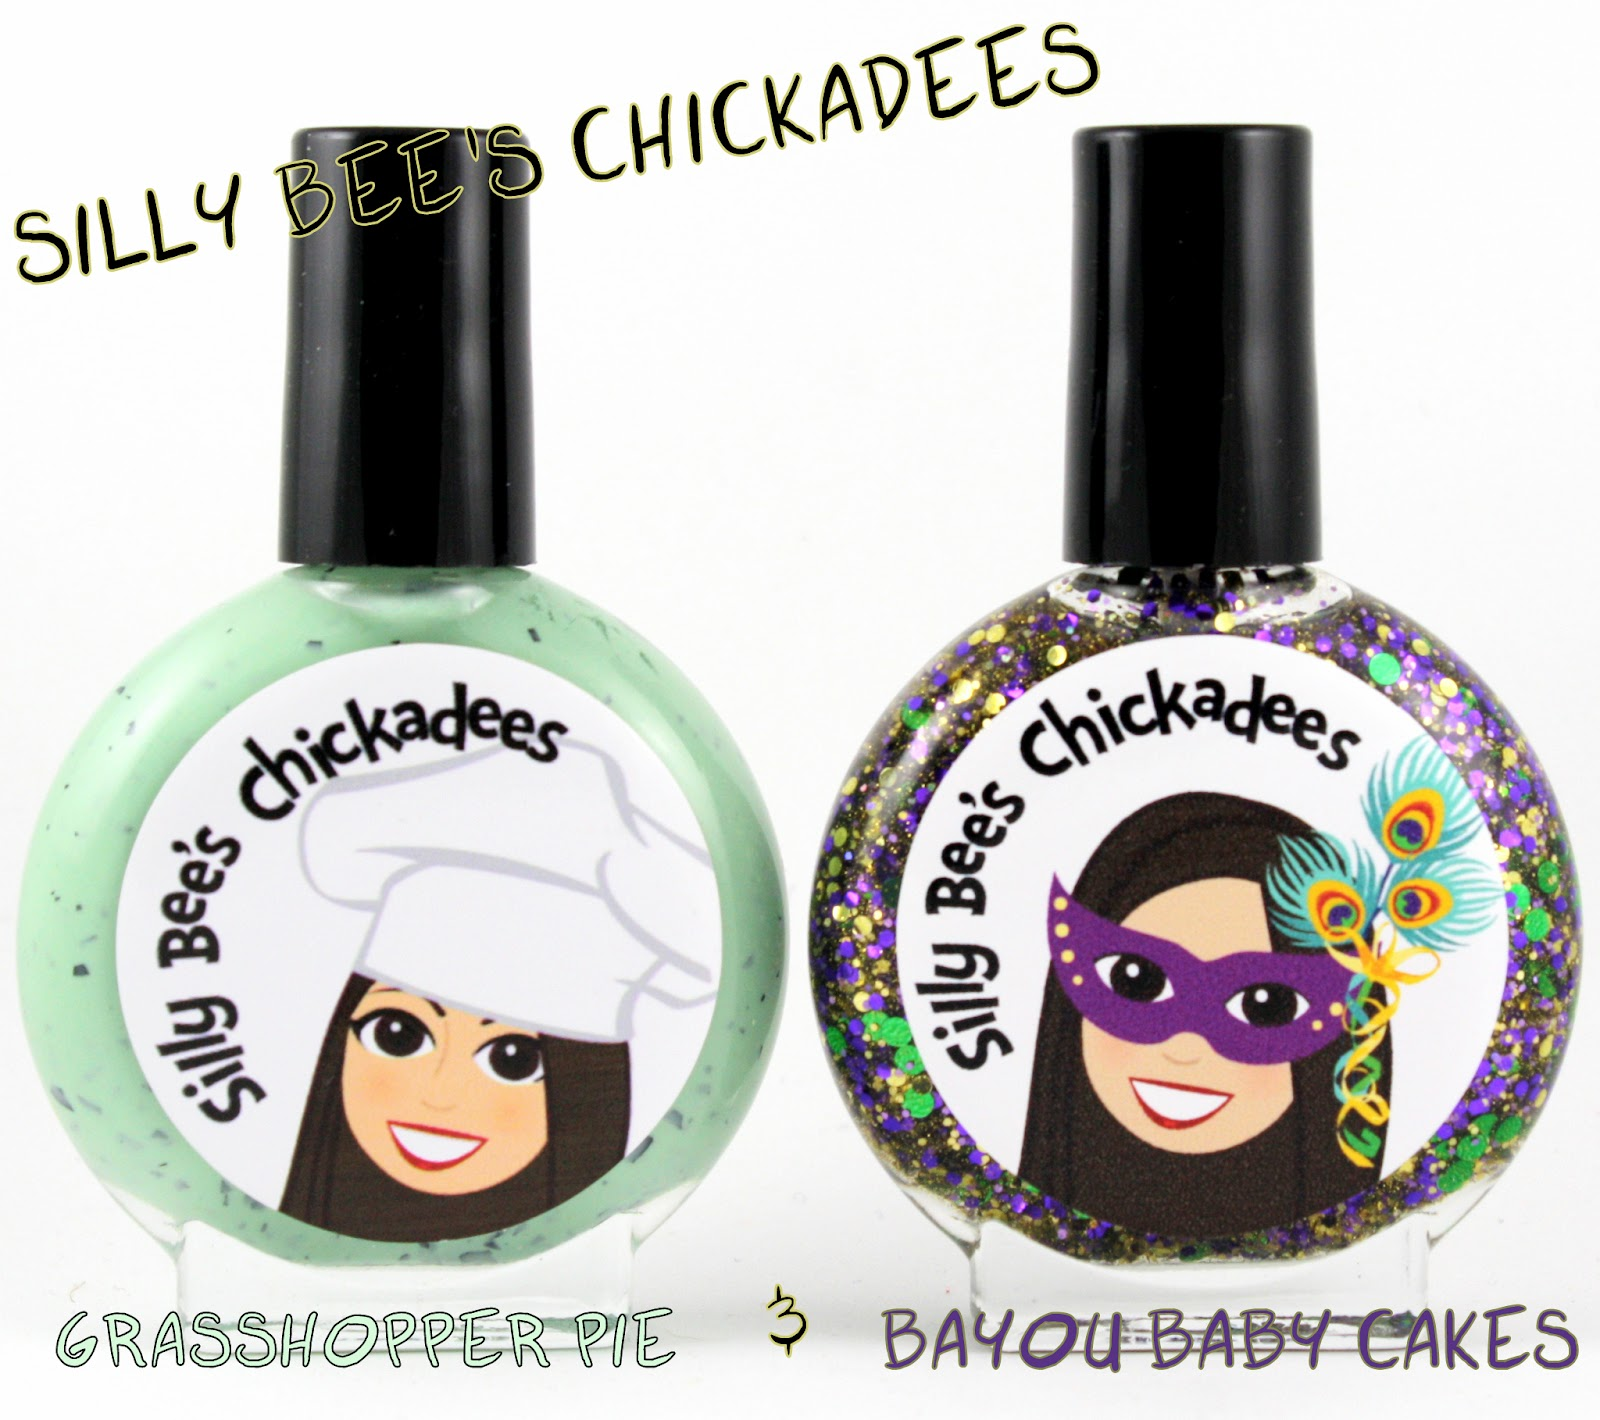 Silly Bee's Chickadees Grasshopper Pie and Bayou Baby Cakes